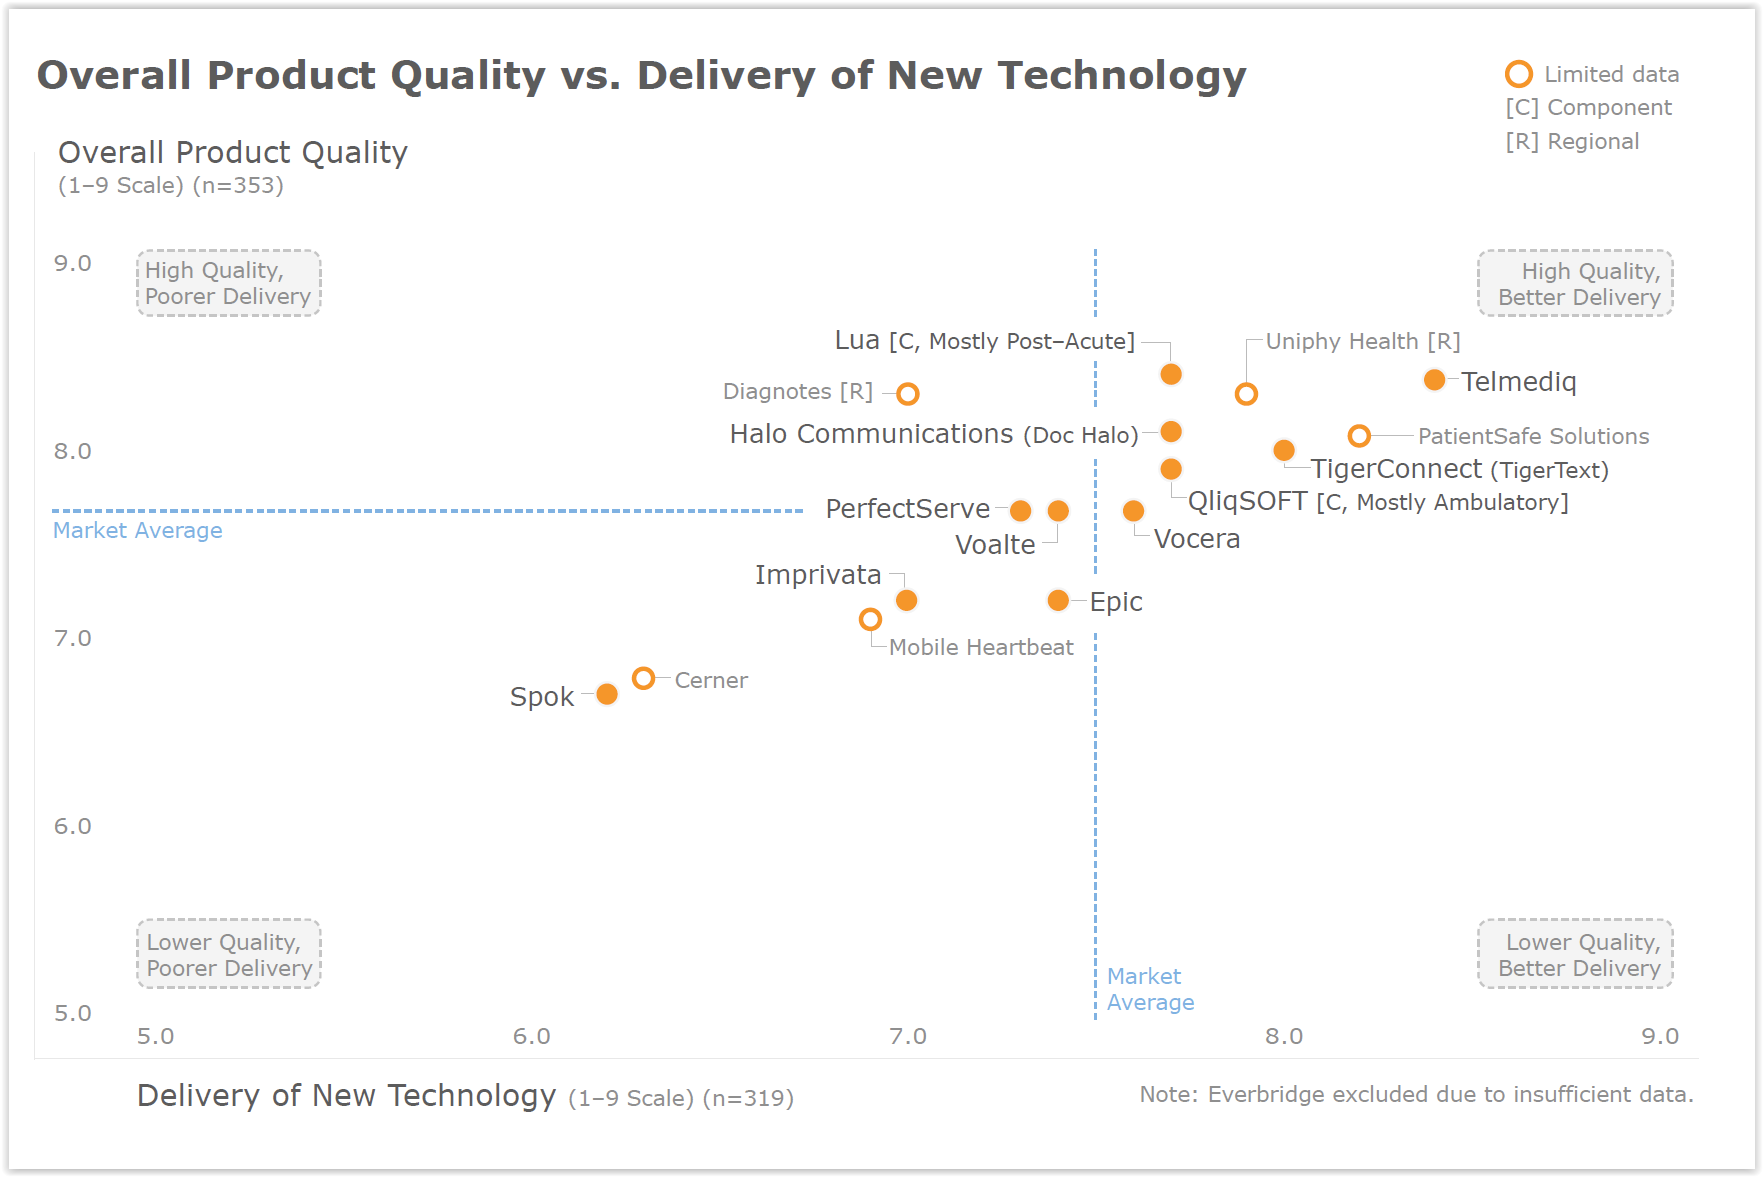 KLAS - Overall Product Quality vs Delivery - Secure Communications